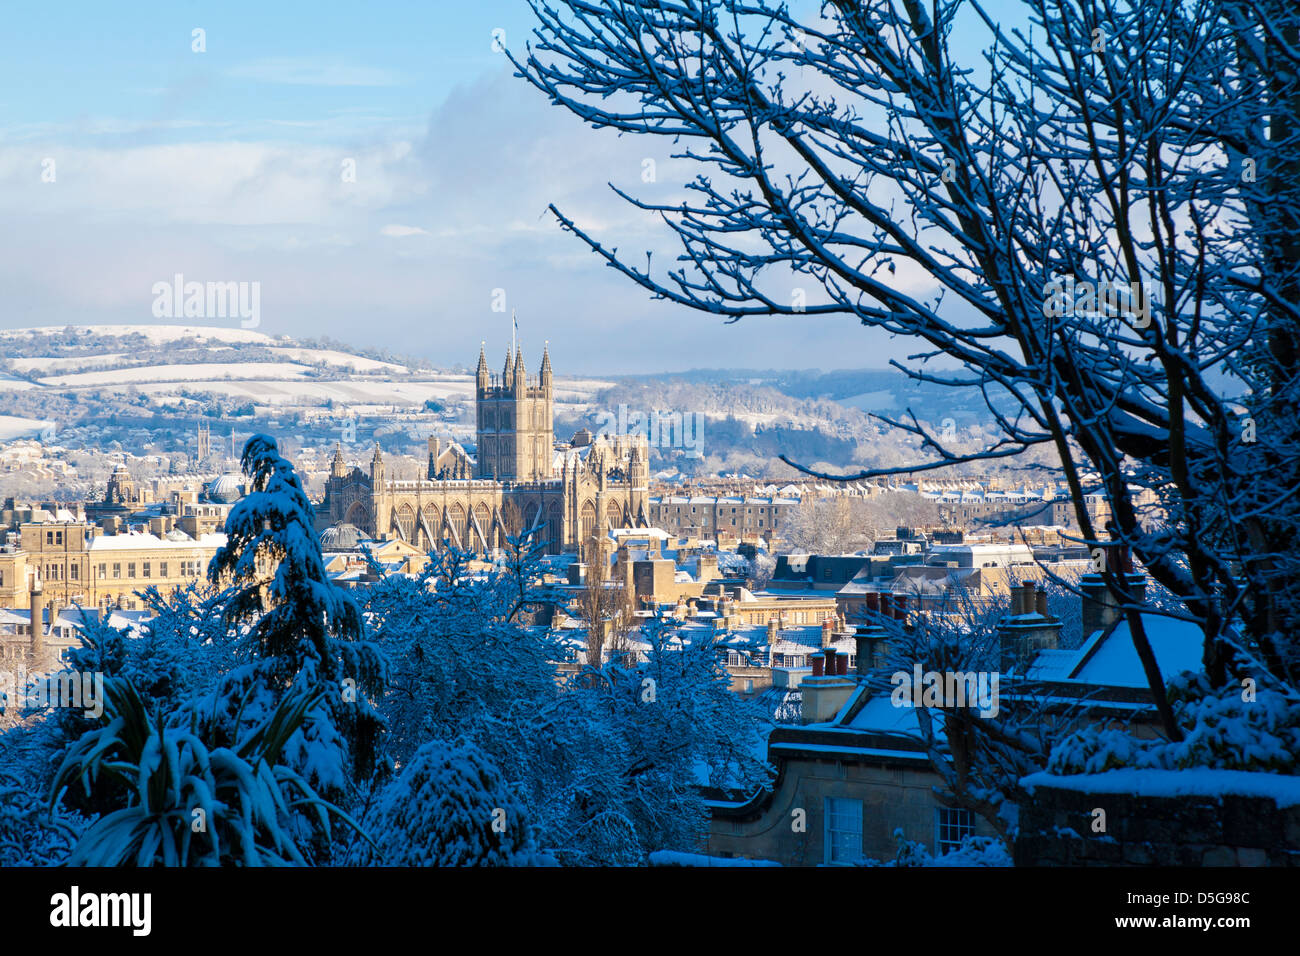 Winter scenic showing Bath Abbey surrounded by Georgian architecture and countryside in Bath, England, UK. - Stock Image